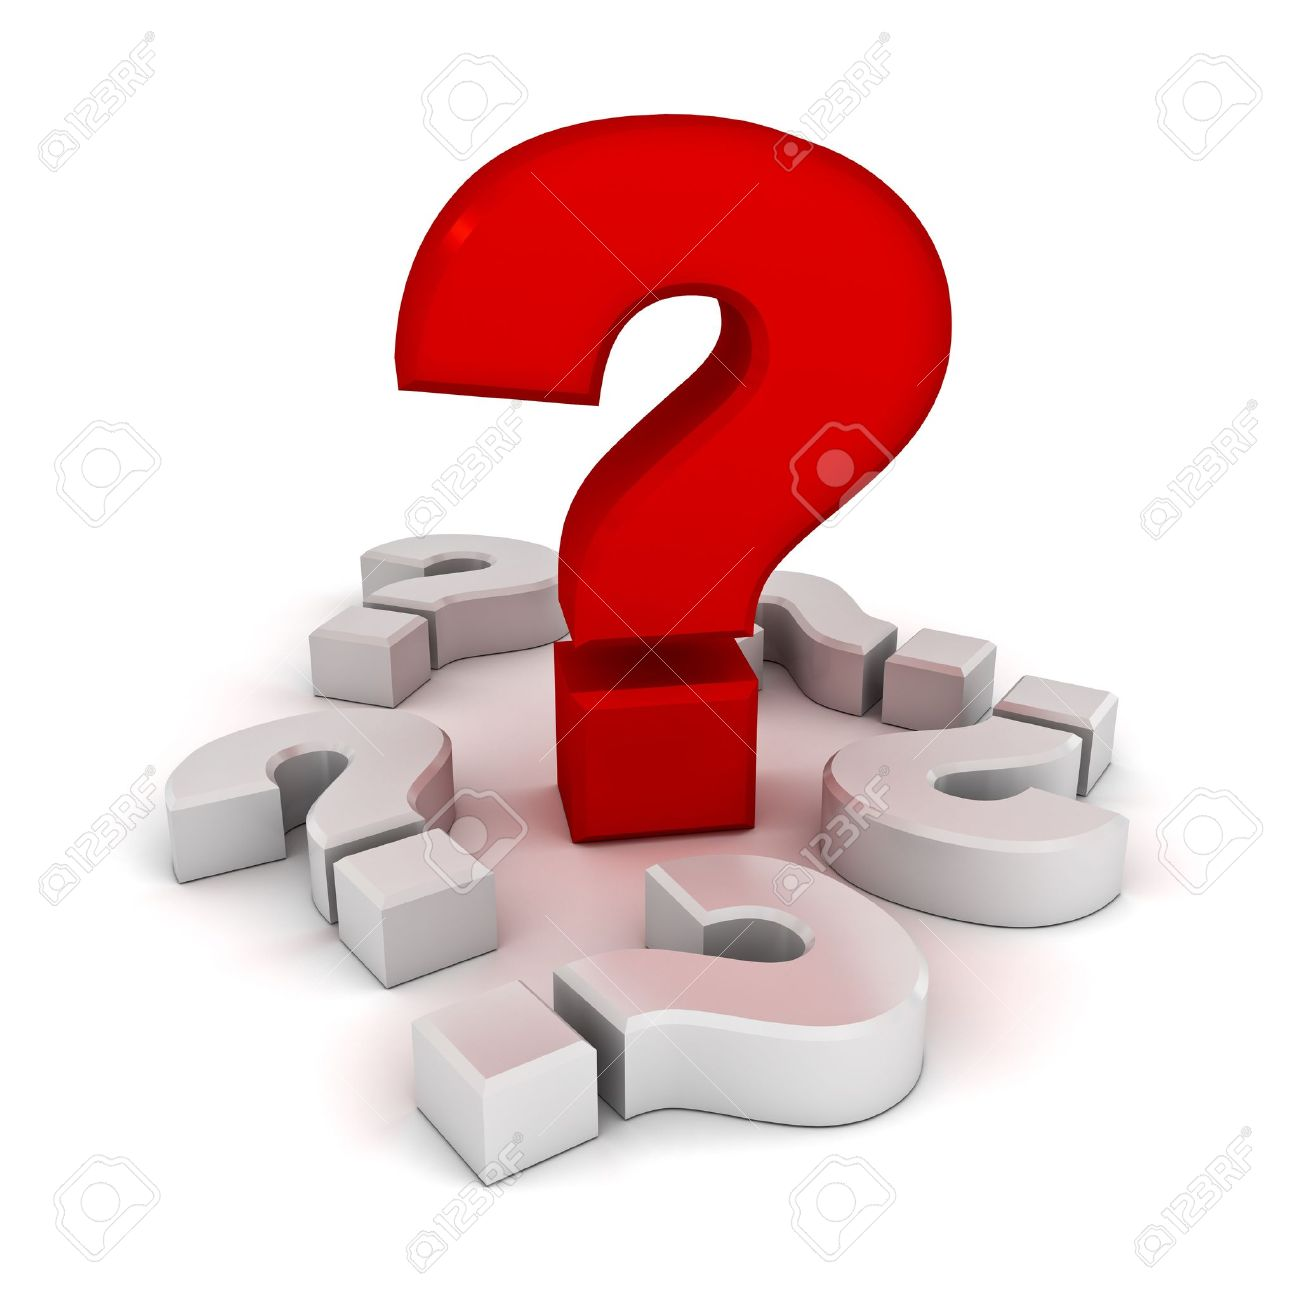 Big problem concept, red question mark amongst white question marks on white background Stock Photo - 13864652